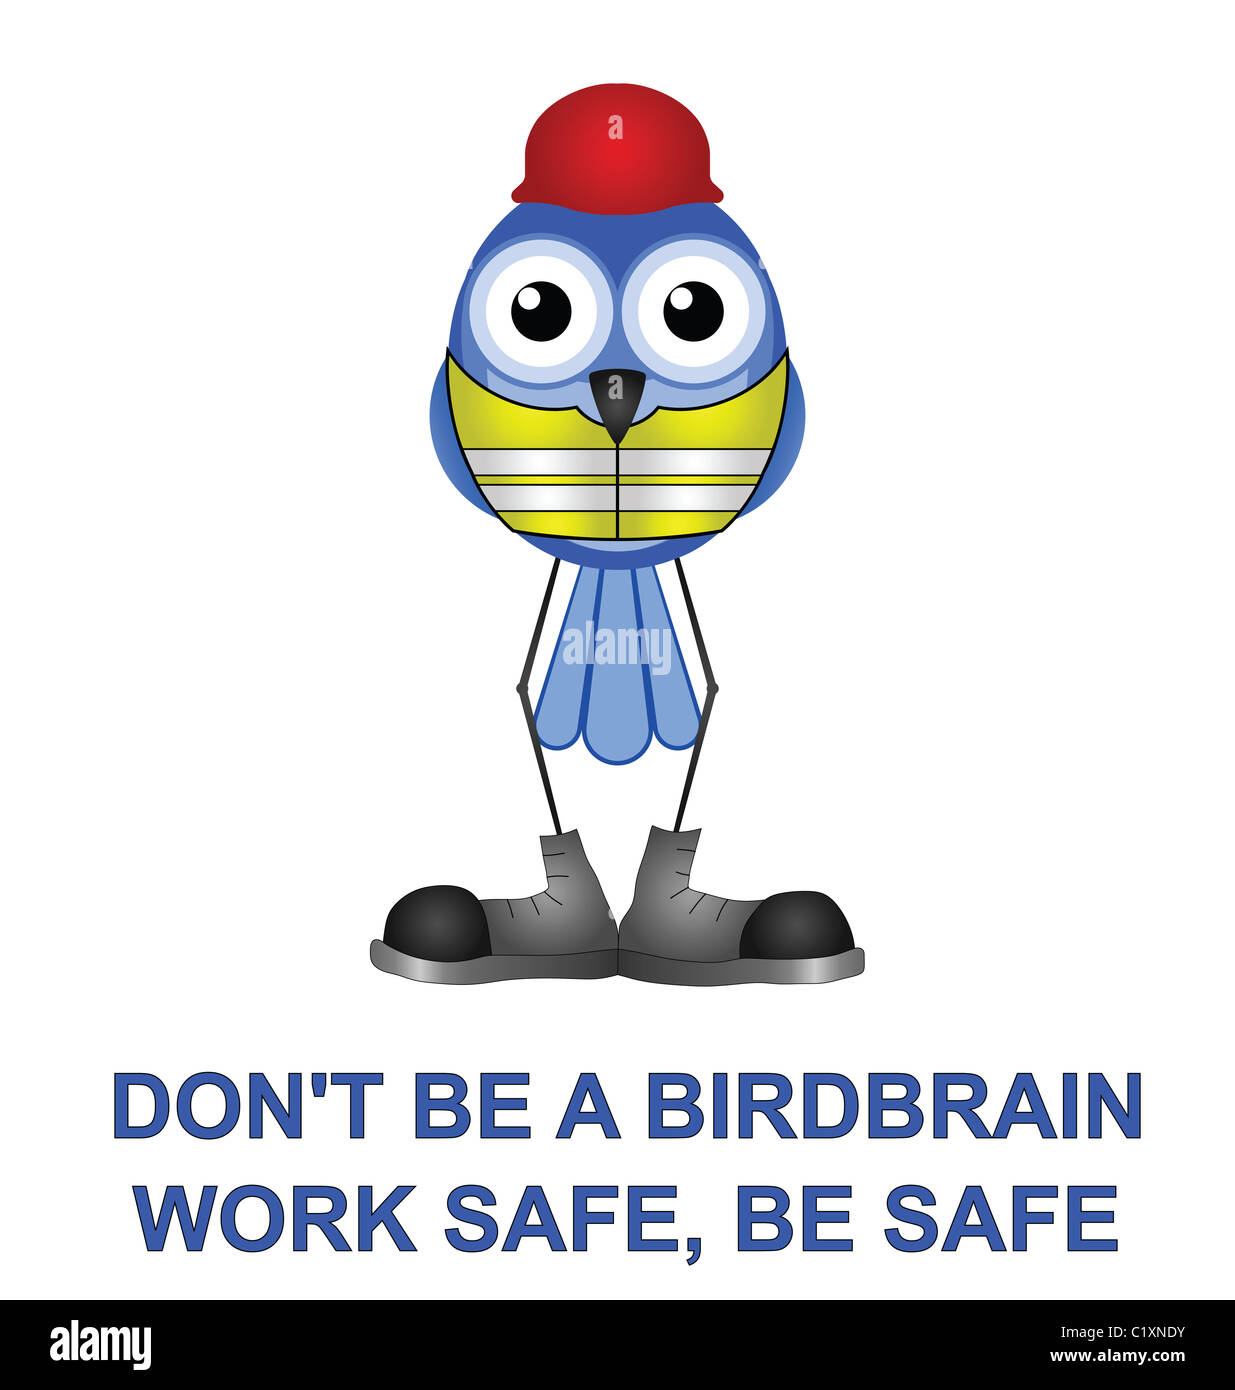 Bird with construction health and safety message - Stock Image